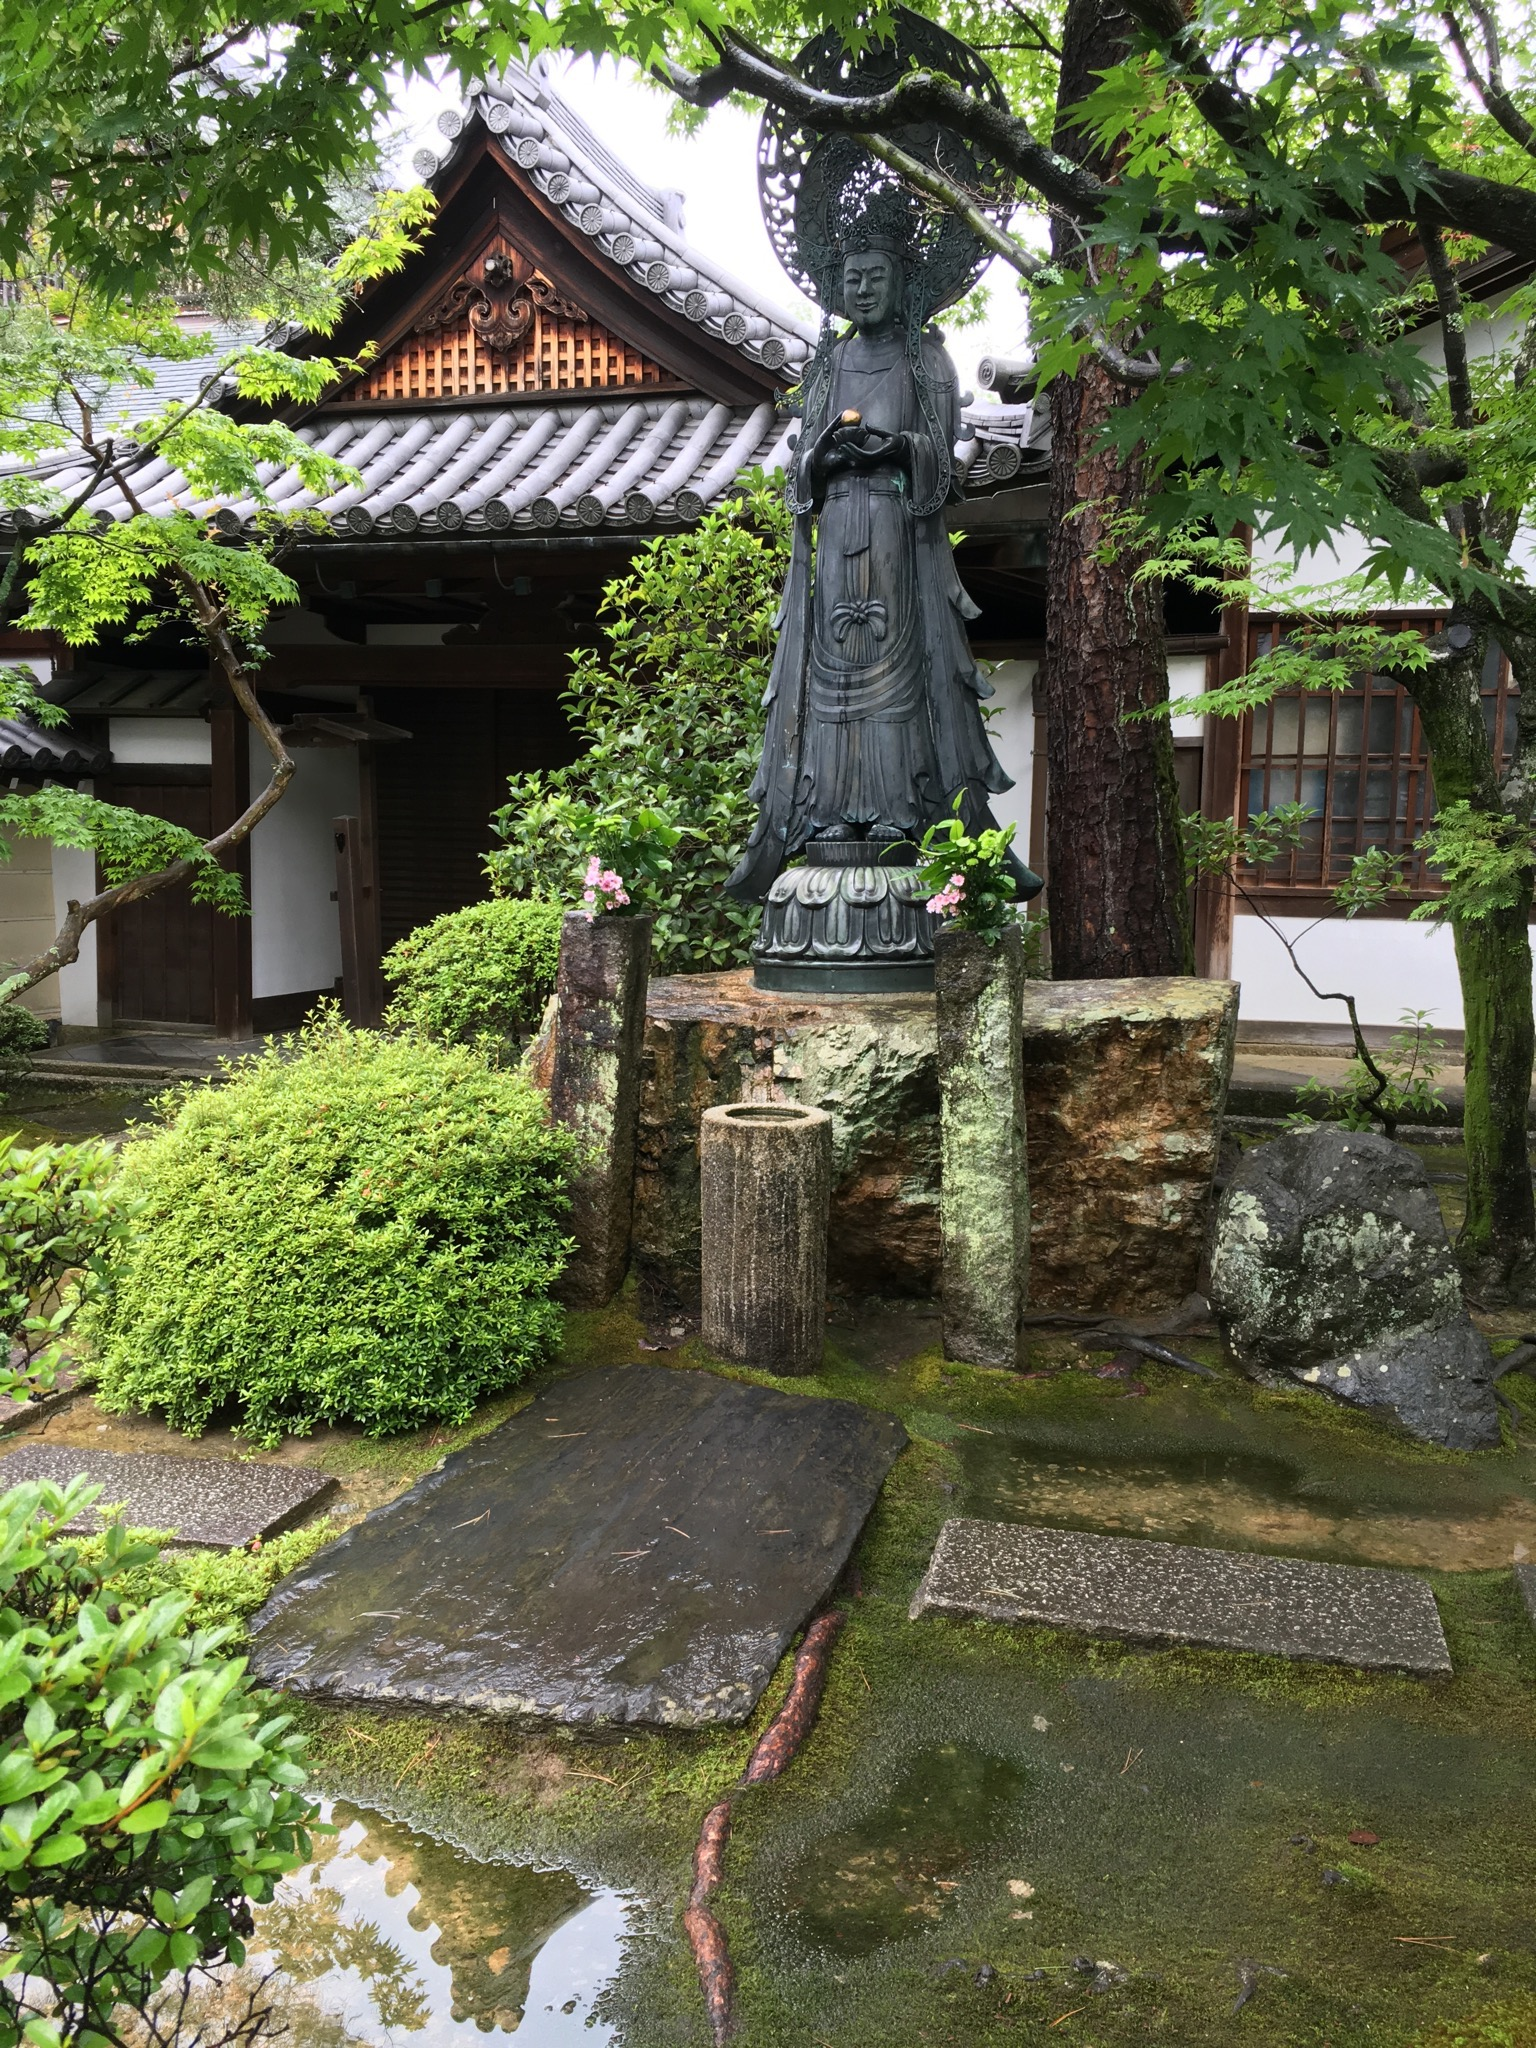 This image at Reiun-in Temple was taken an hour after it rained. There is a greenness, lusciousness and vibrancy to the vegetation that speaks of new life. The water droplets on the leaves and reflections also add to the beauty of the rainy season.